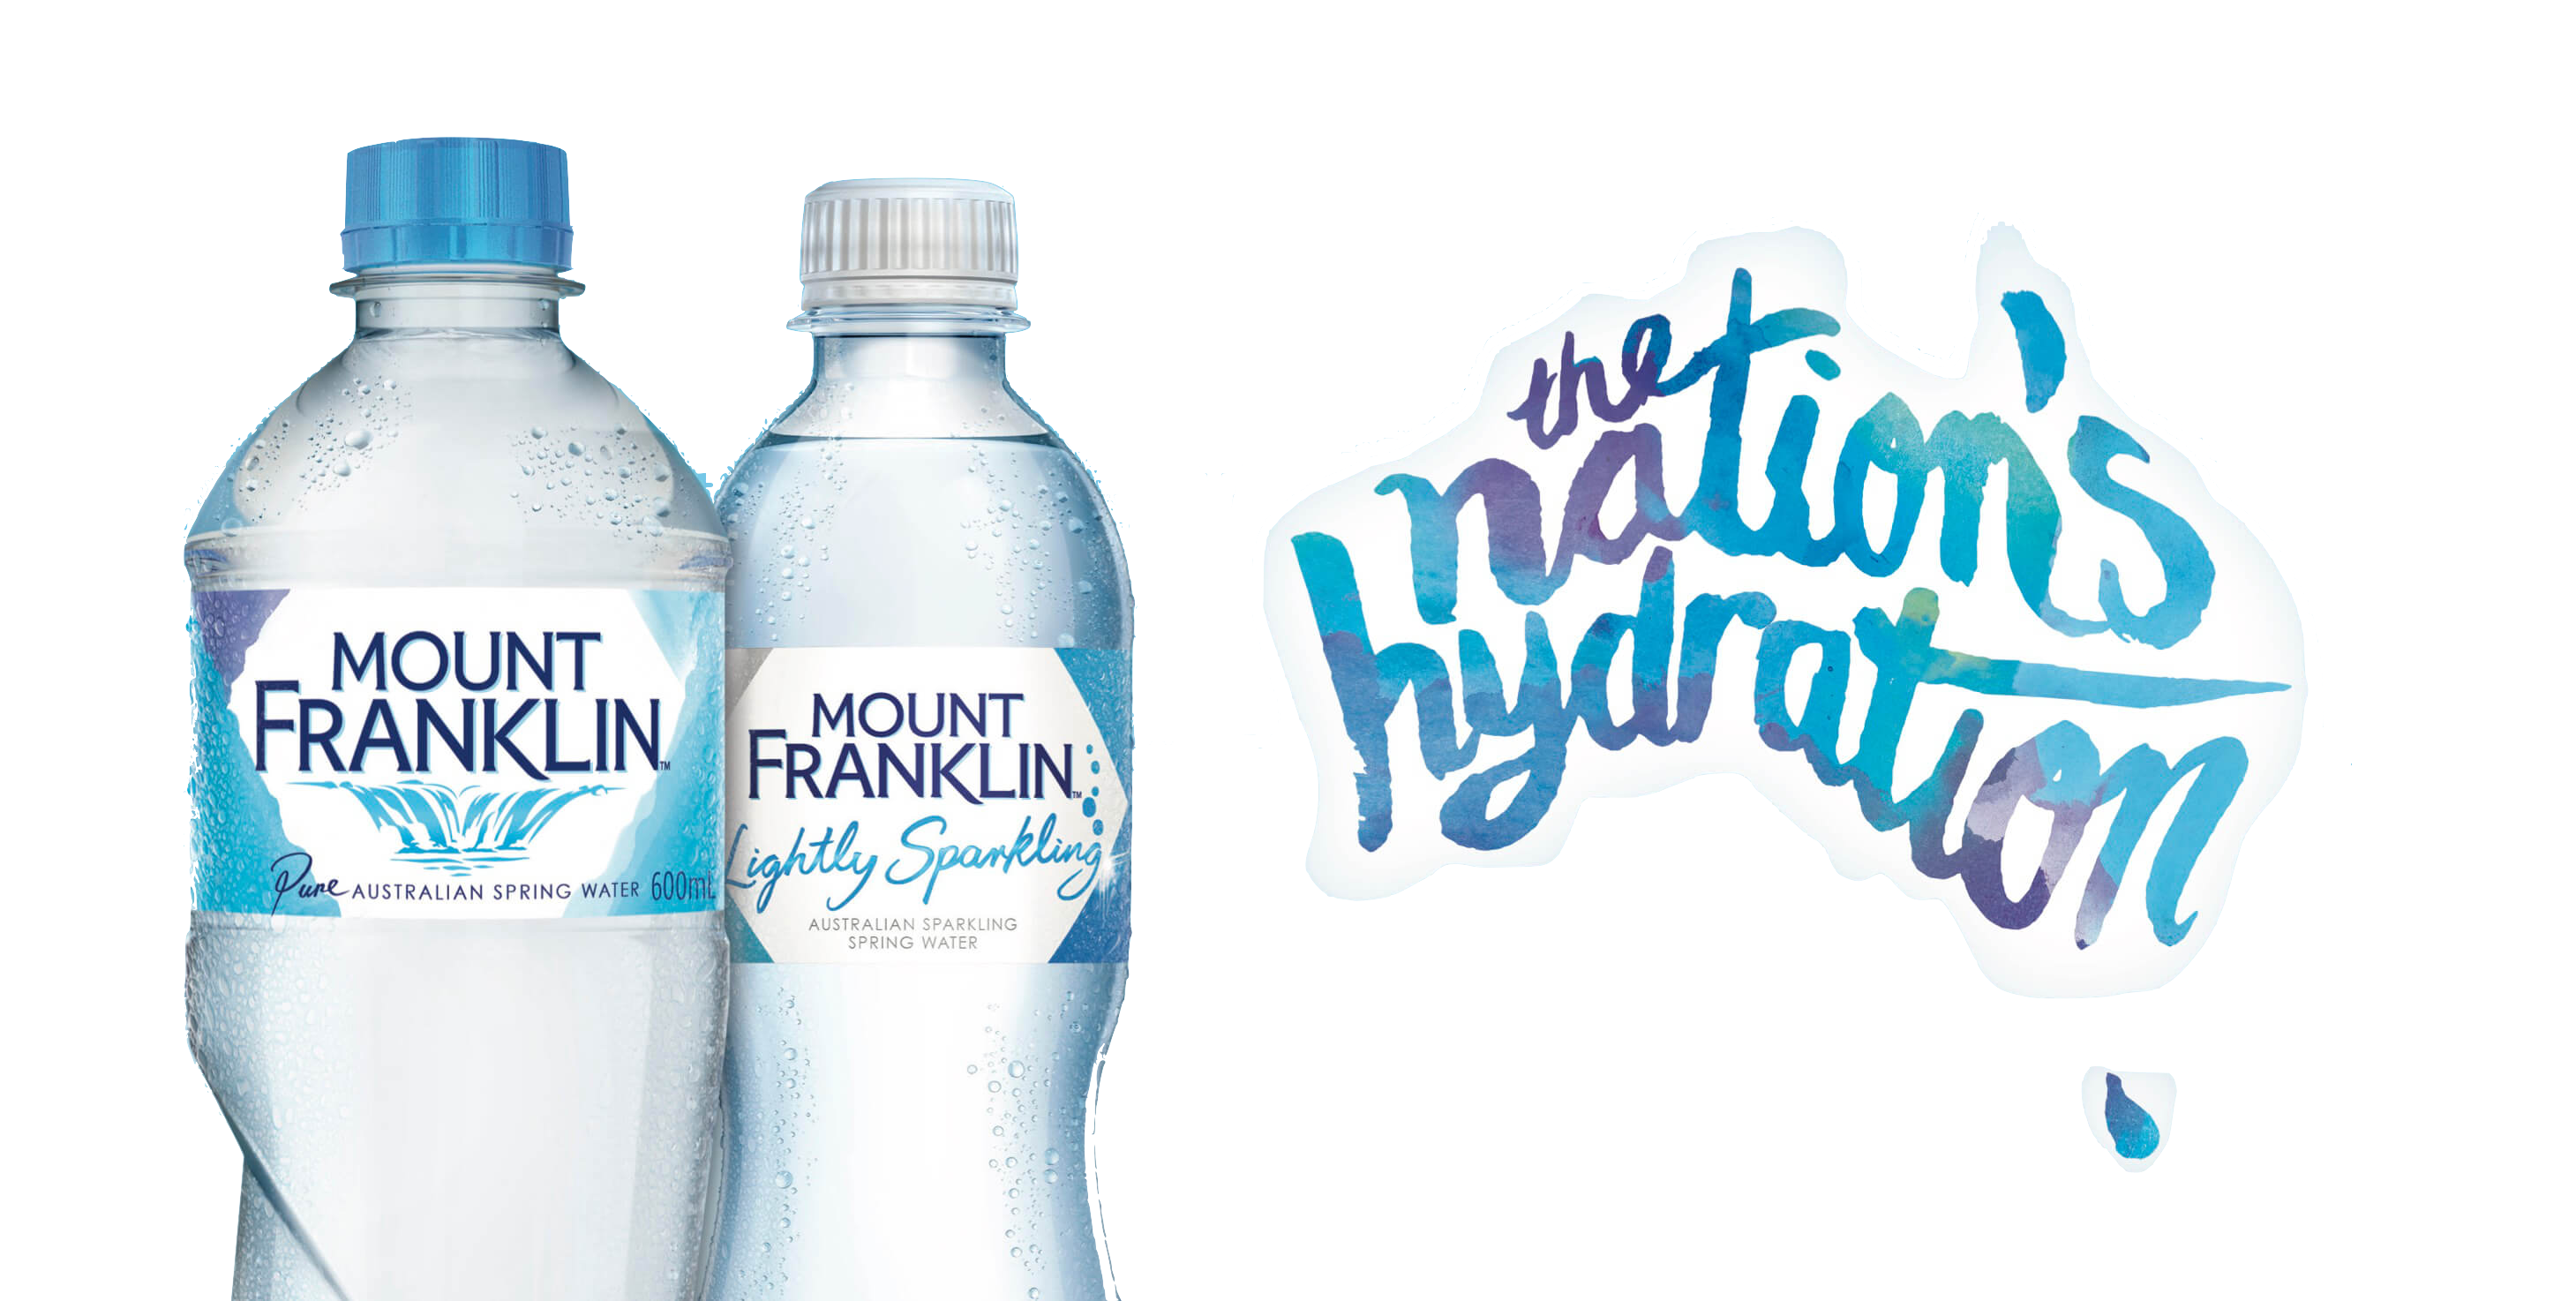 Mount Franklin Water - the nation's hydration